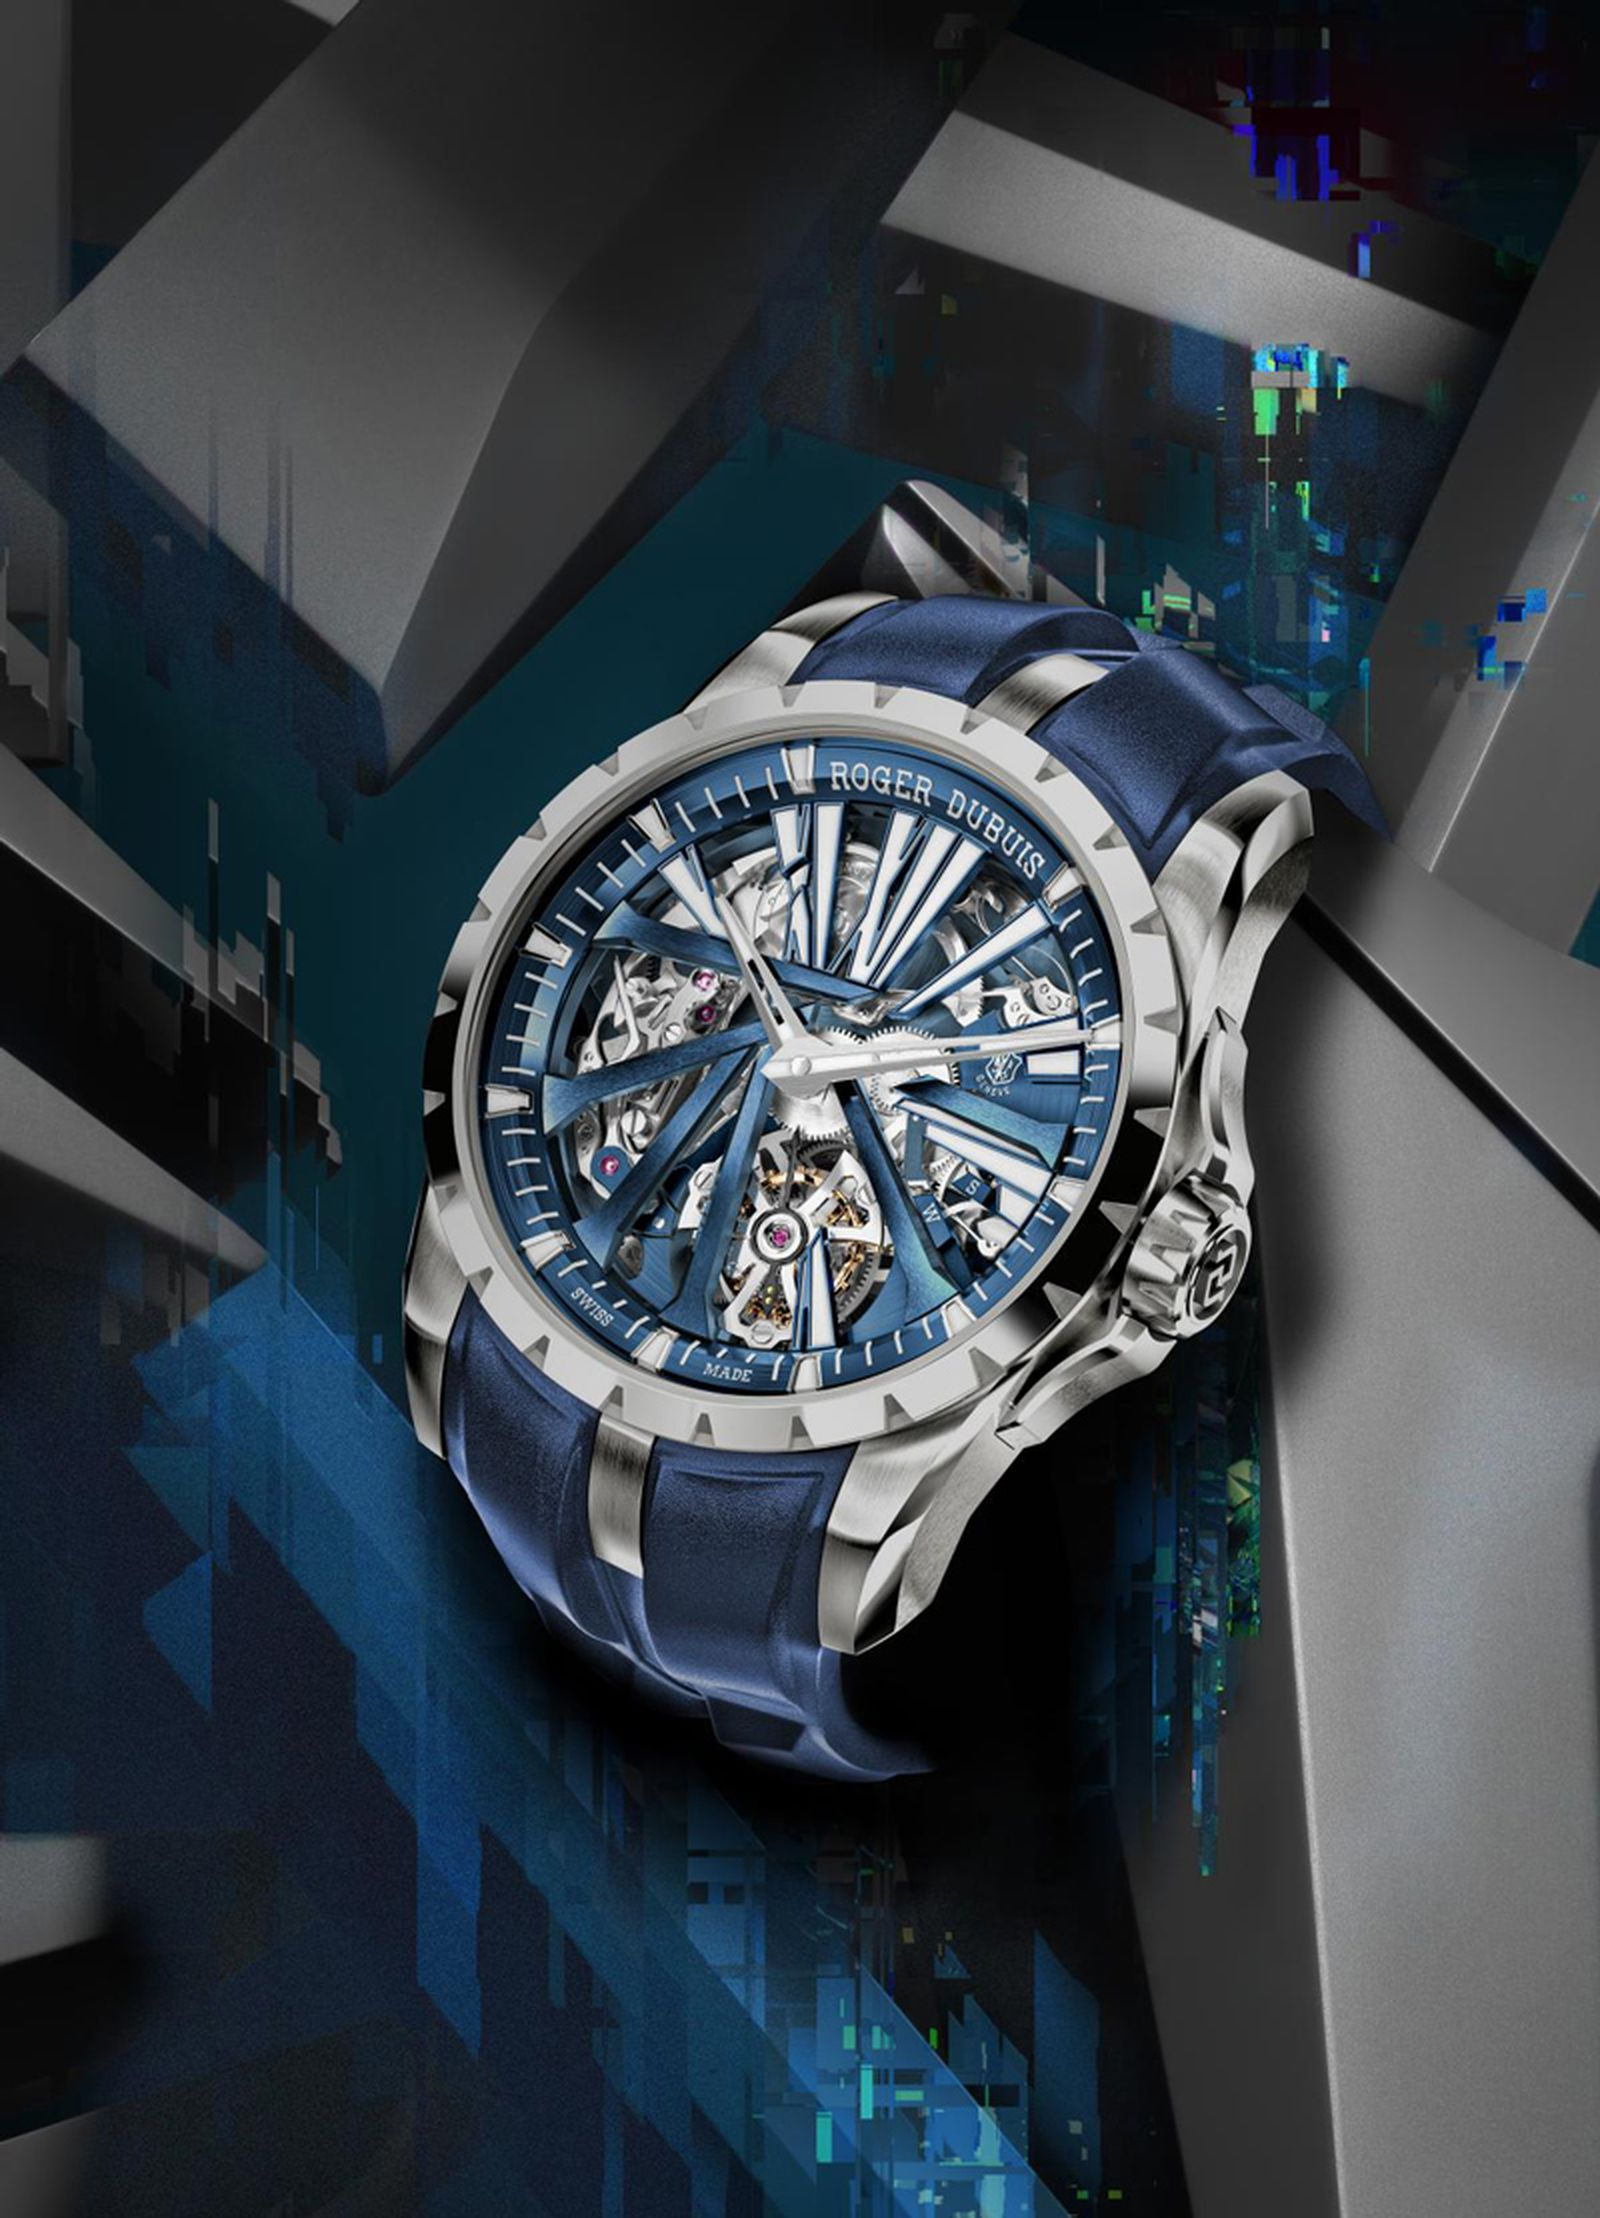 rethink-timing-four-cool-watches-watchesandwonders-com-05